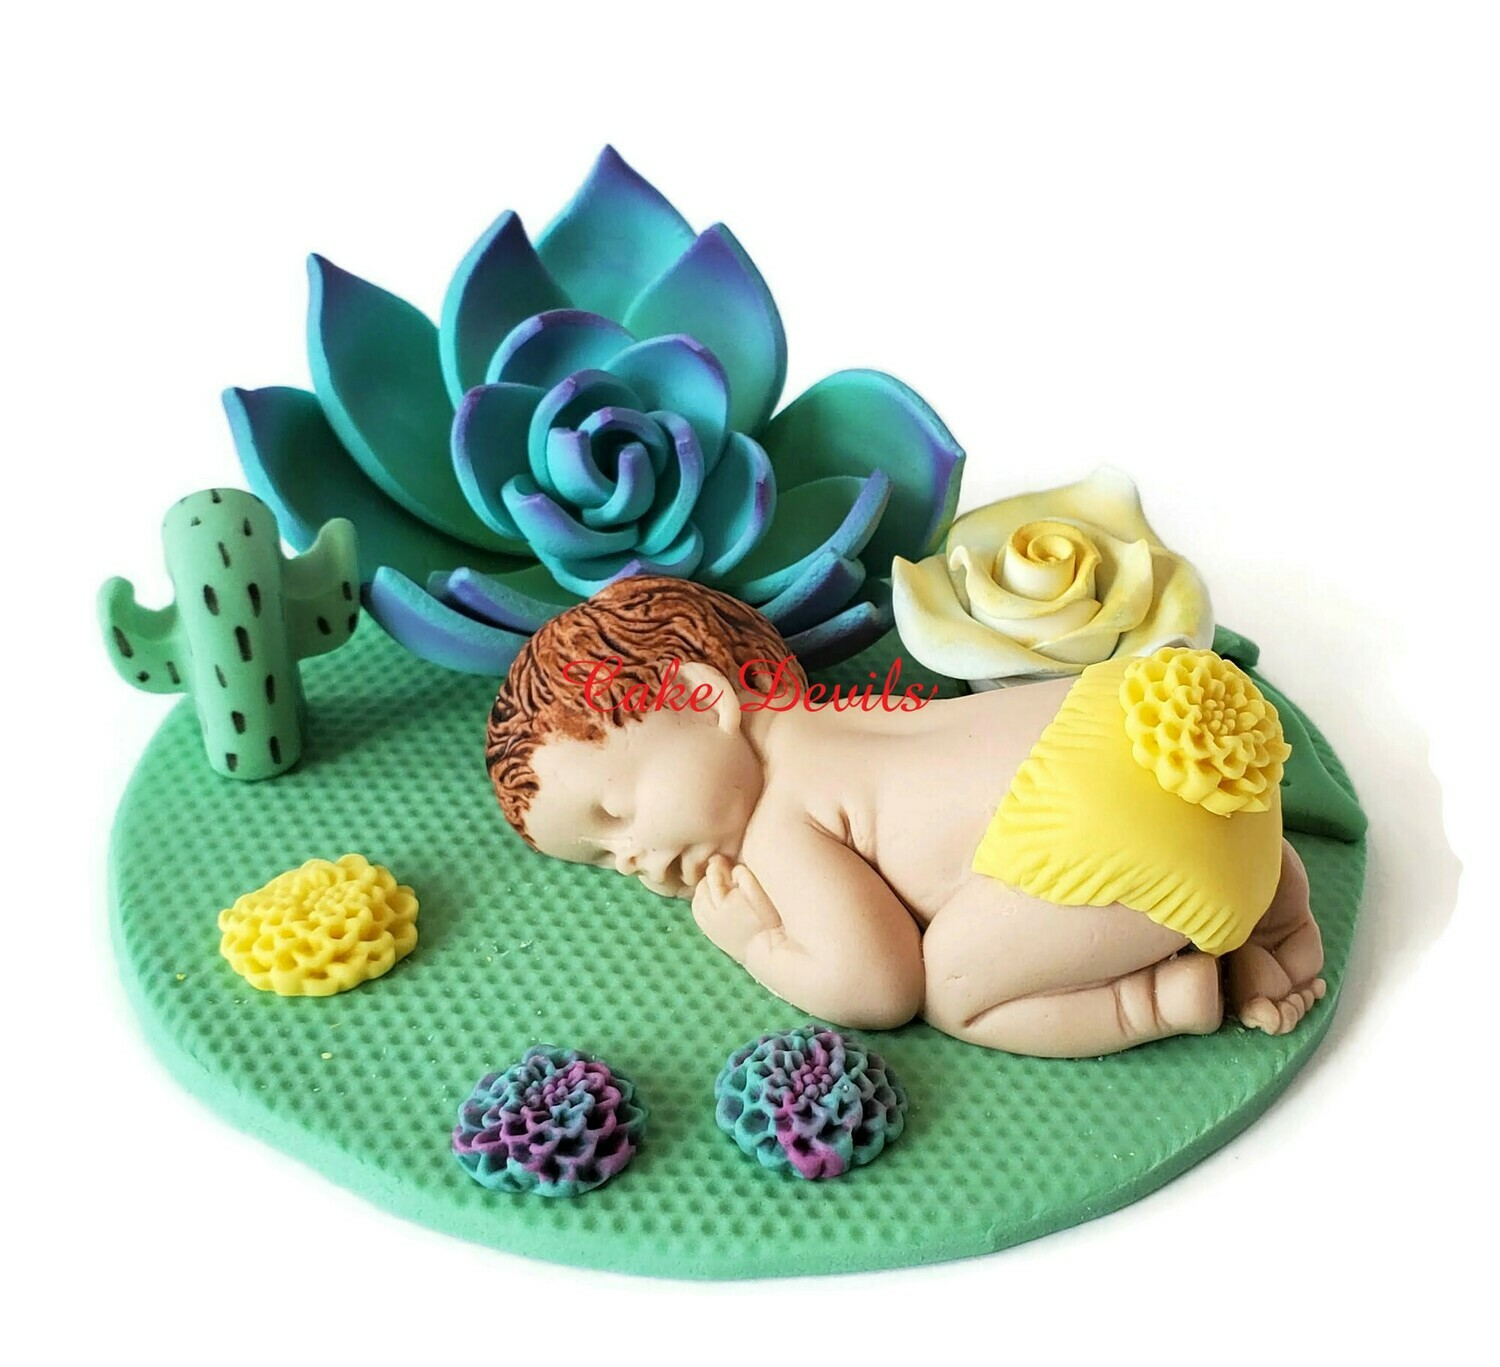 Succulent Baby Shower Cake Topper, Fondant Cactus Sleeping baby Cake Decorations, Rustic Desert Rose Garden